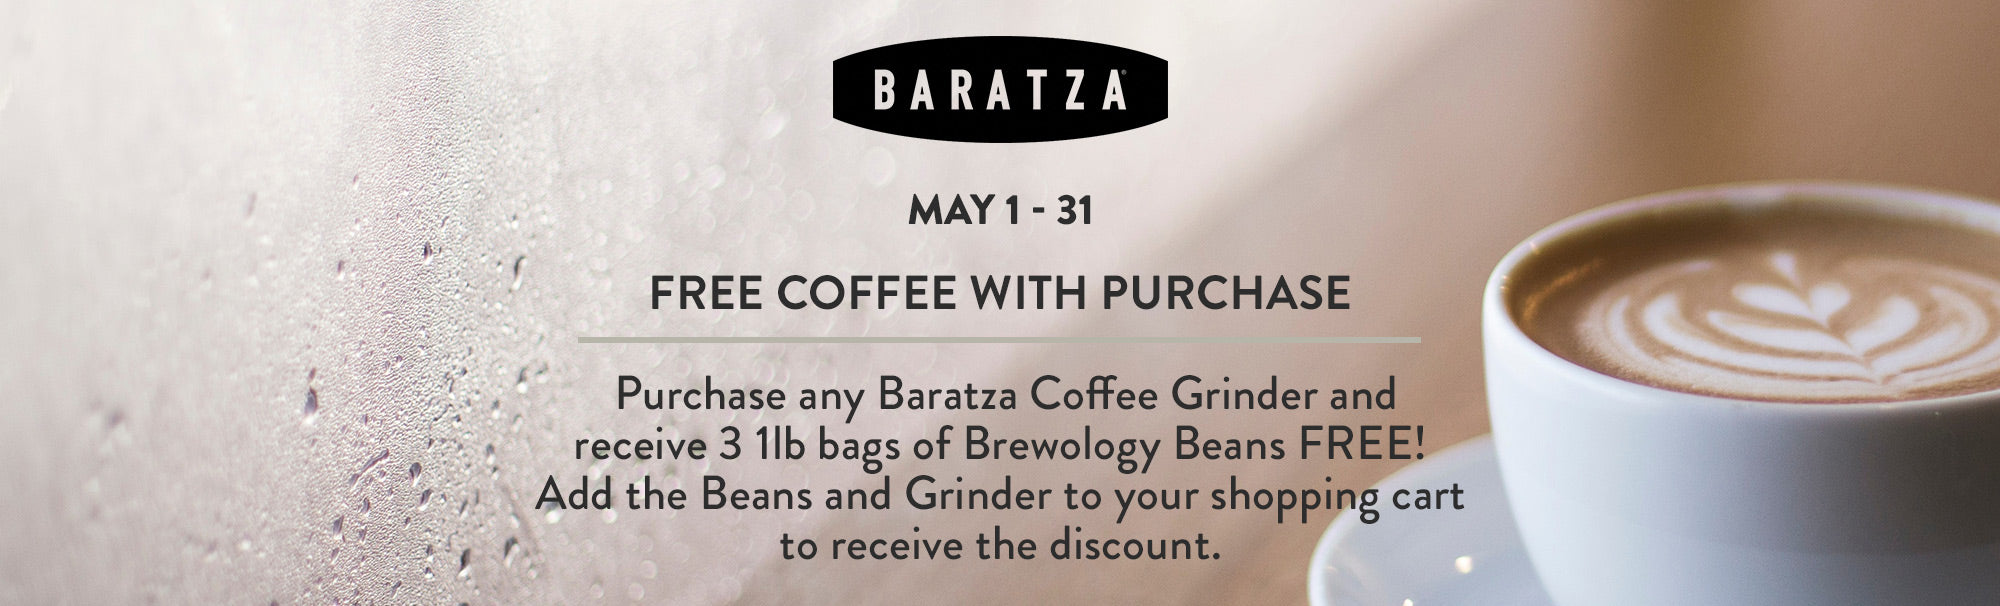 Free Beans with Baratza Purchase